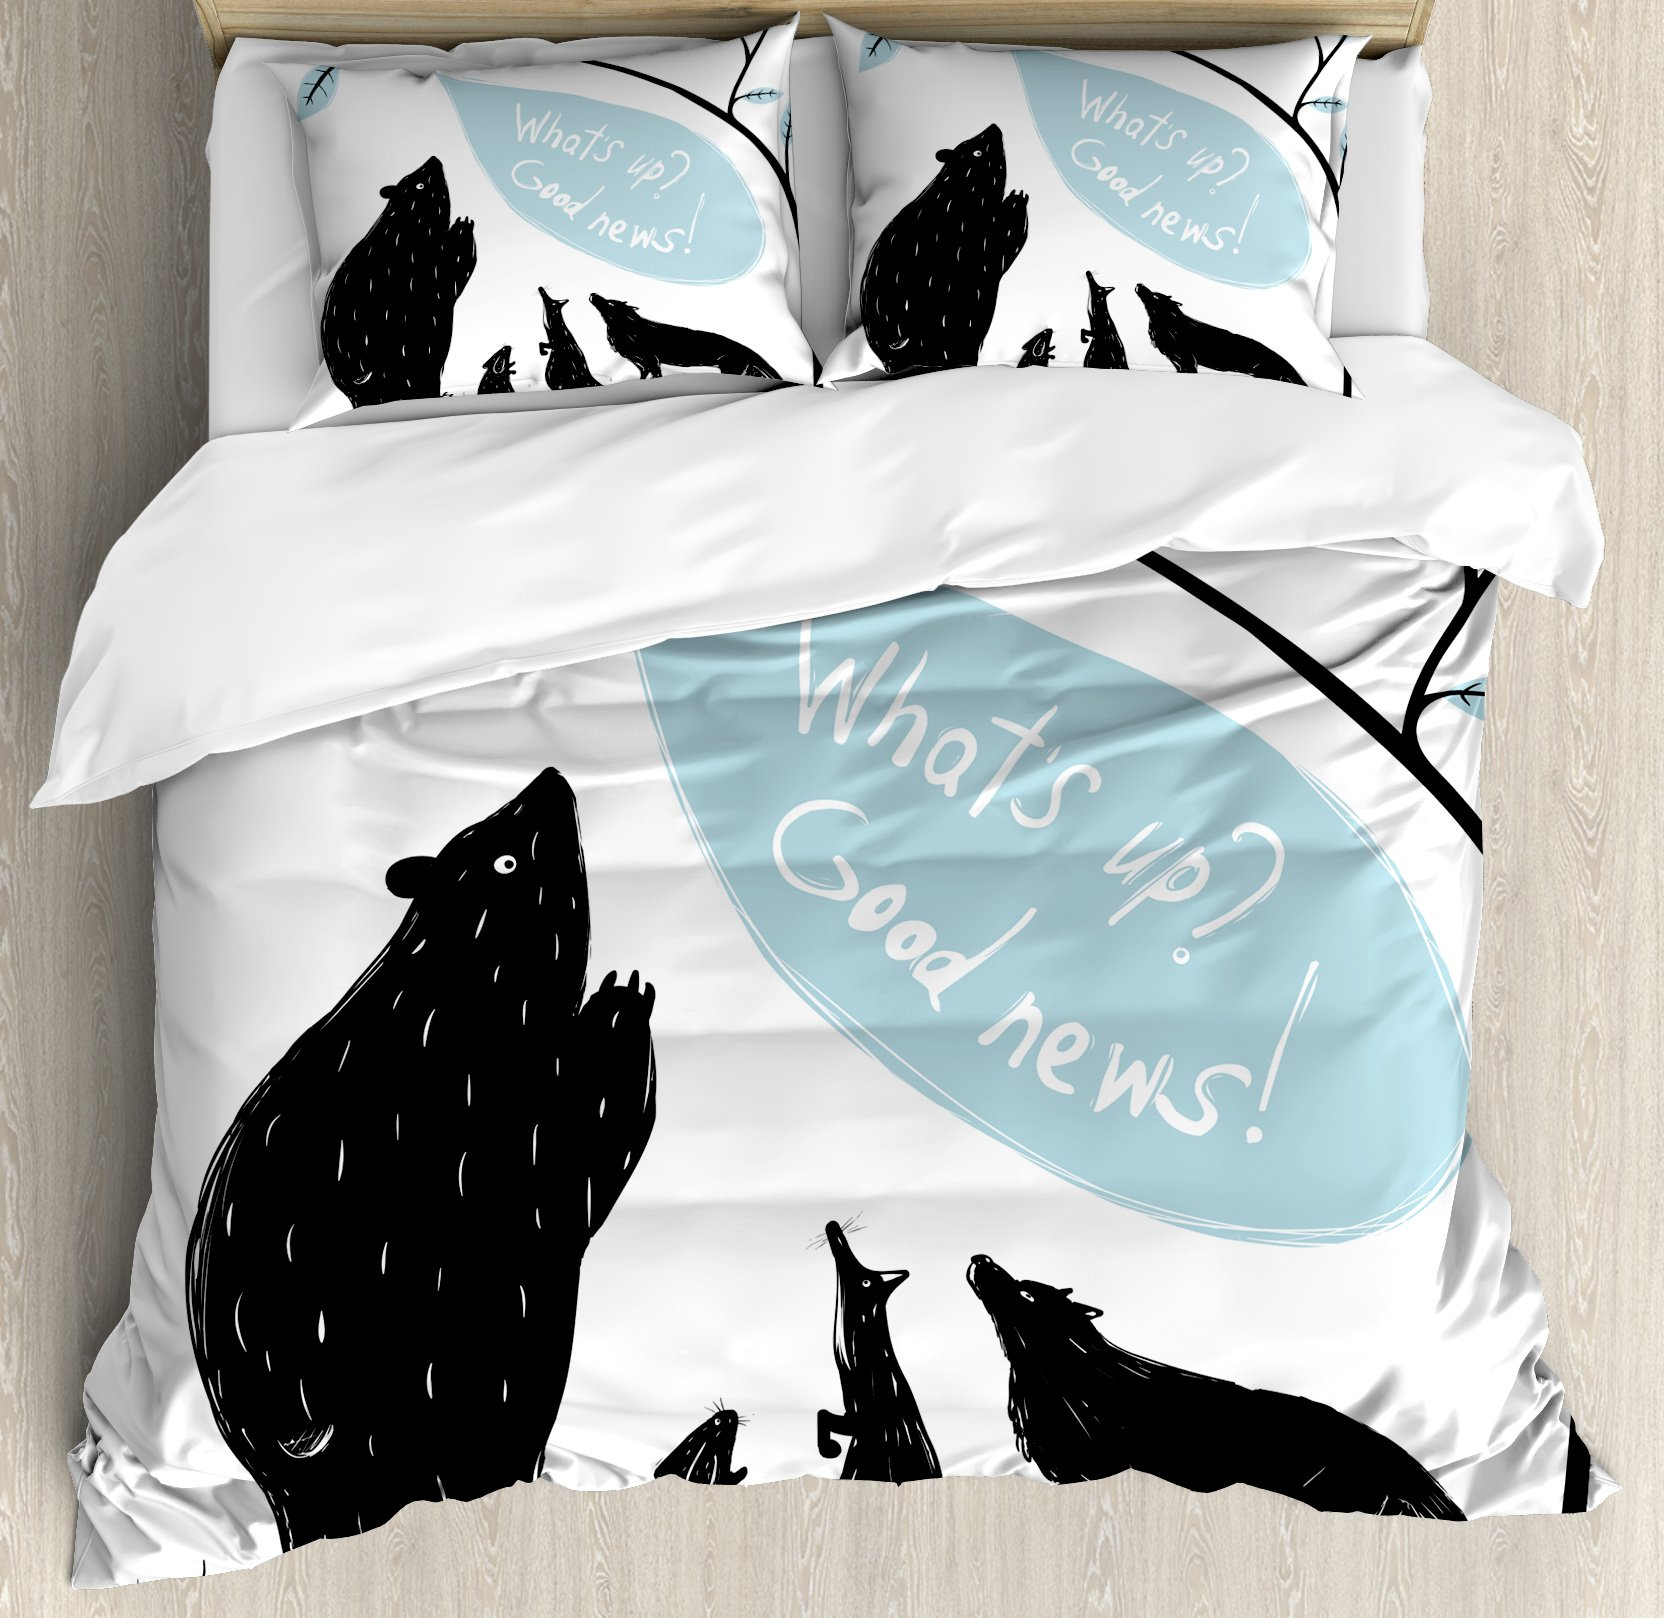 Quirky Decor Queen Size Duvet Cover Set by Ambesonne, Forest Animals Meeting Bird Bringing Good News to His Friends, Decorative 3 Piece Bedding Set with 2 Pillow Shams, Light Blue Black White